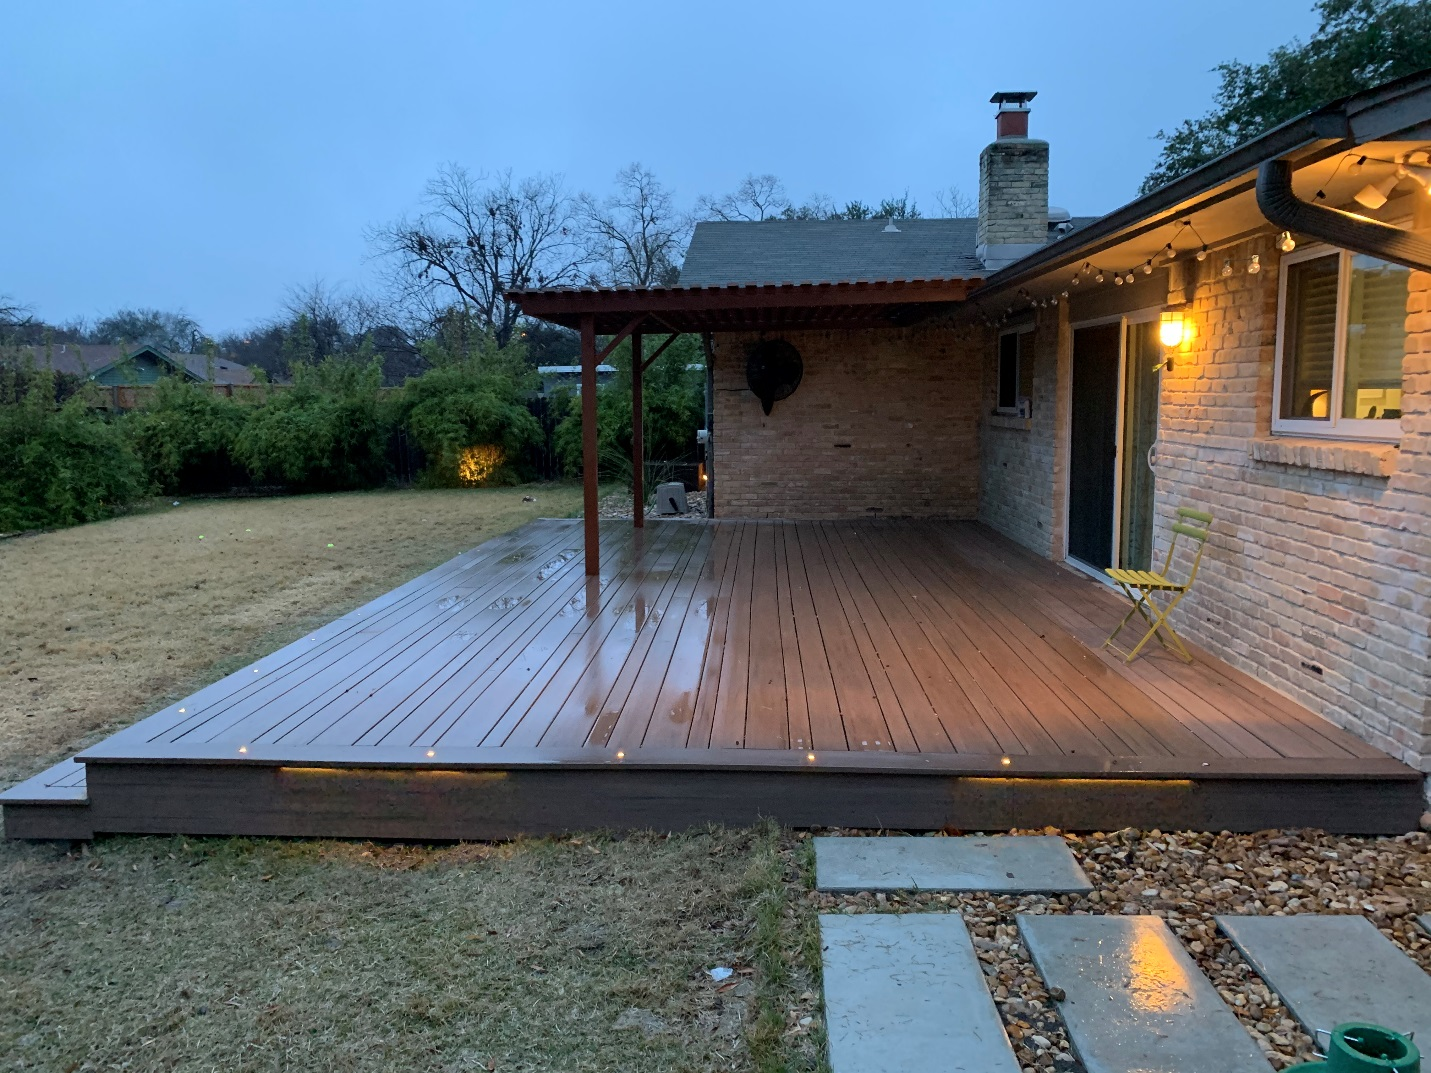 We-used-AZEK's-exclusive-multi-width-decking-to-create-a-unique-aethetic